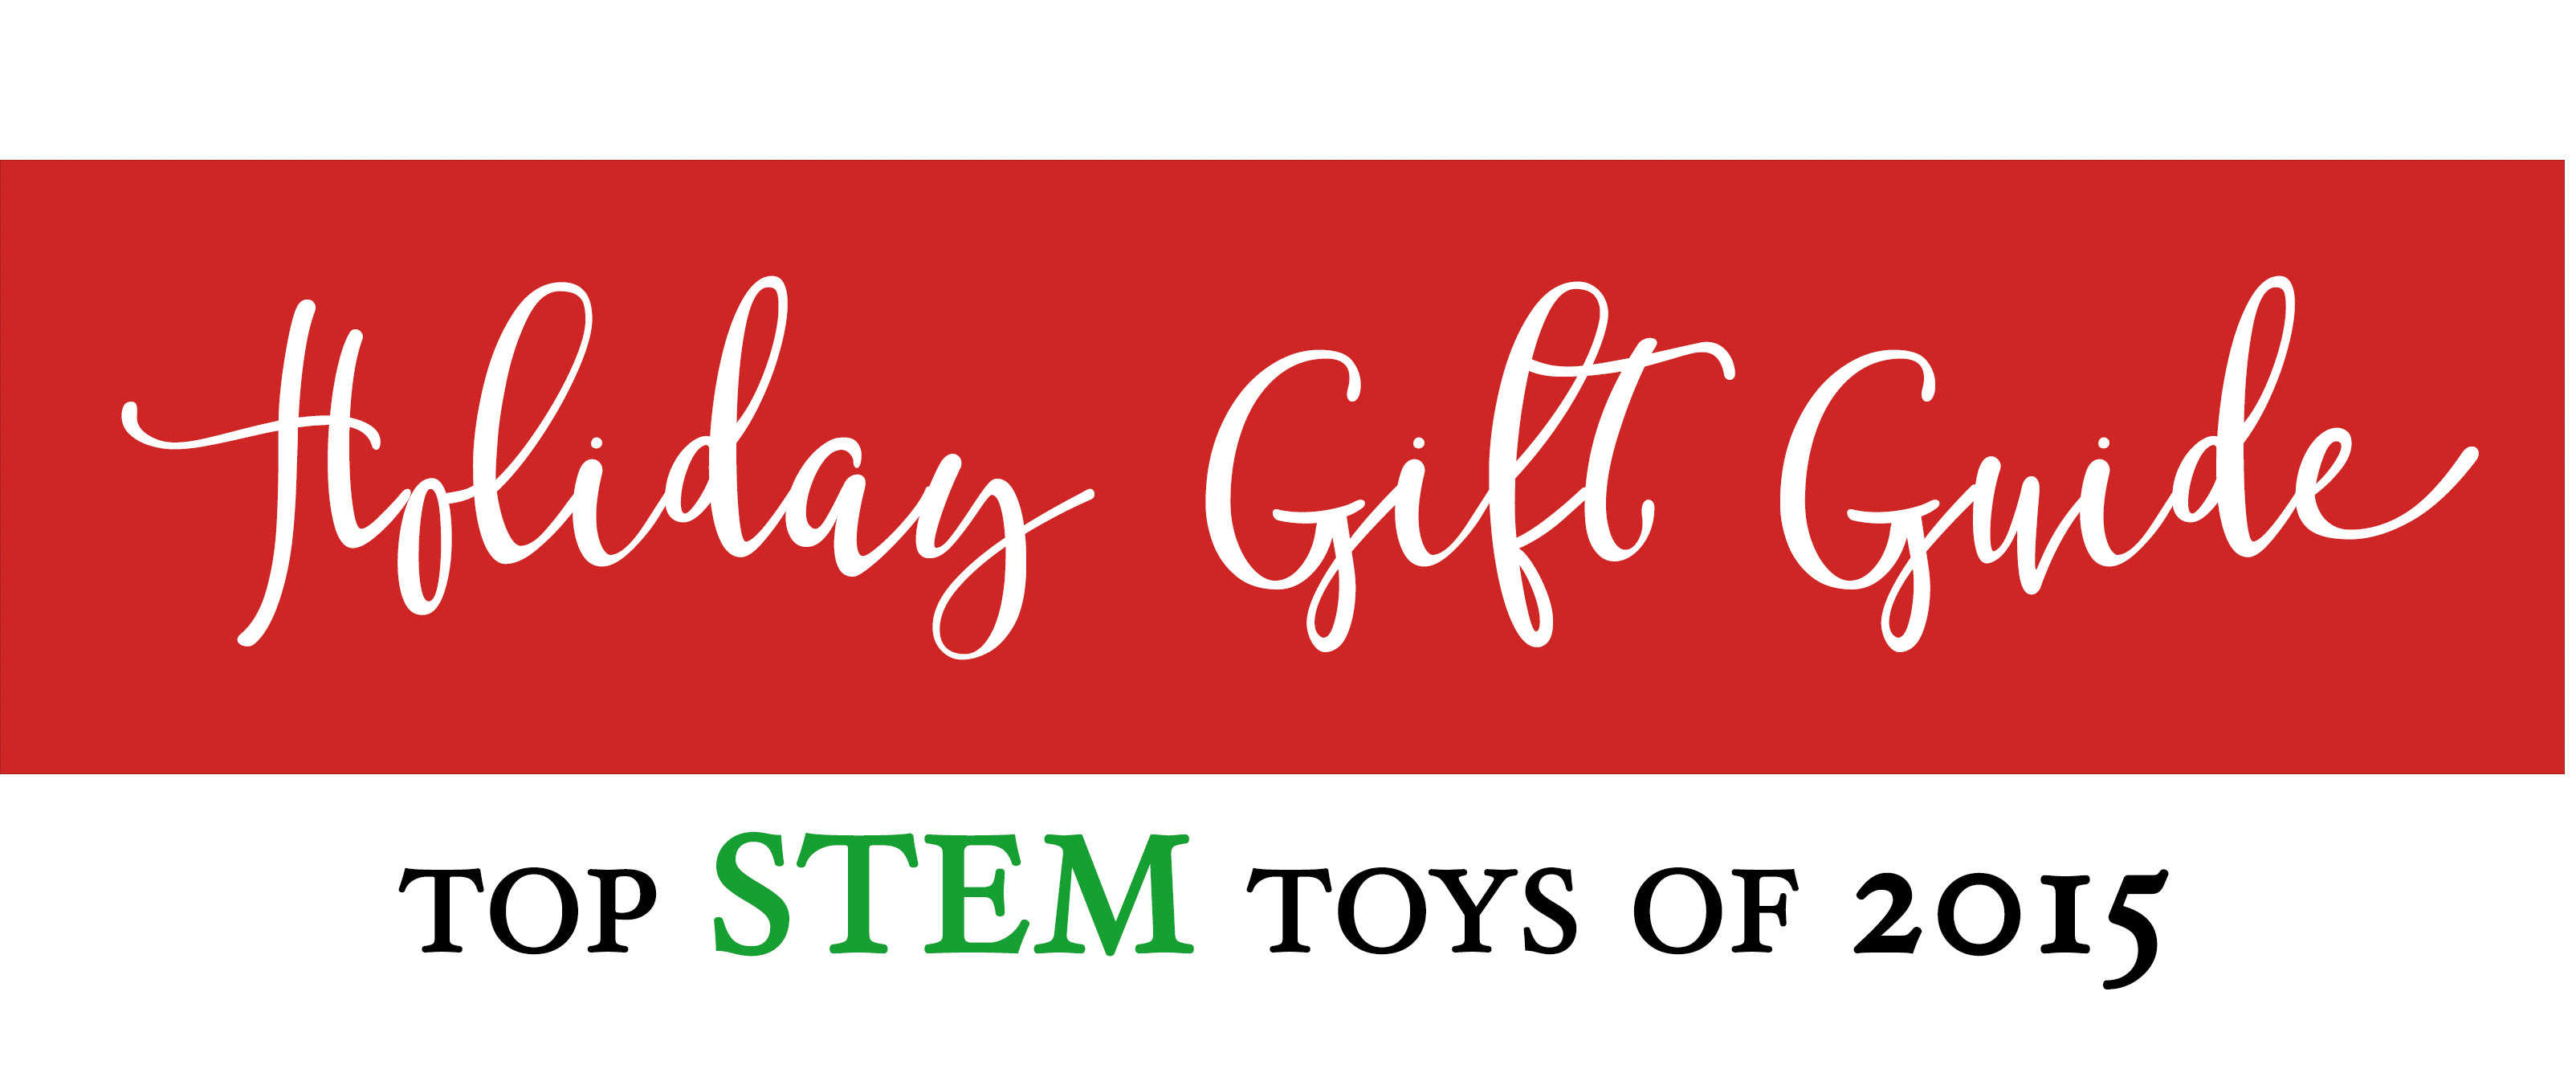 Holiday Gift Guide 2015 Top STEM TOys for Kids Kids Christmas List frostedevents.com Toy Reviews